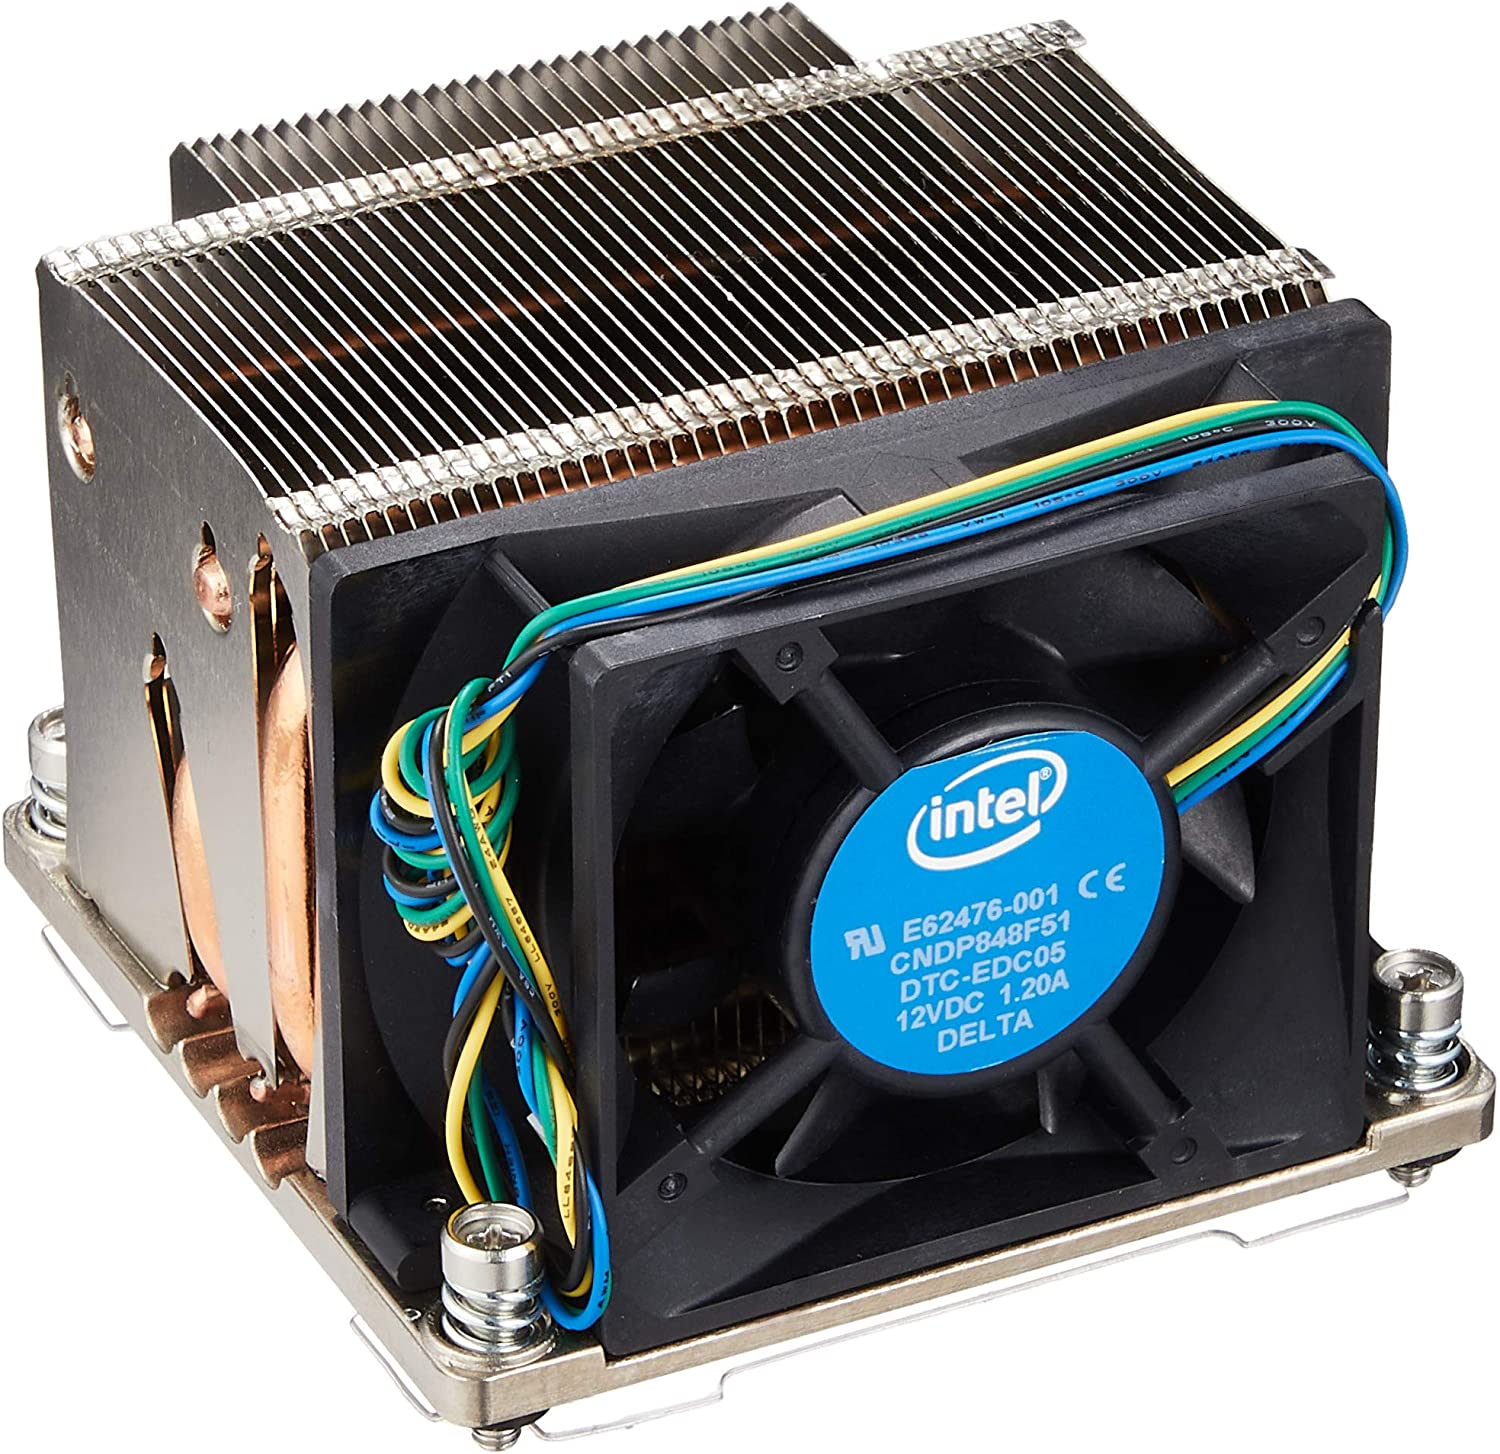 Intel Thermal Solution Cooling Fan/Heatsink for LGA2011 E5-2600 Processors (BXSTS200C)